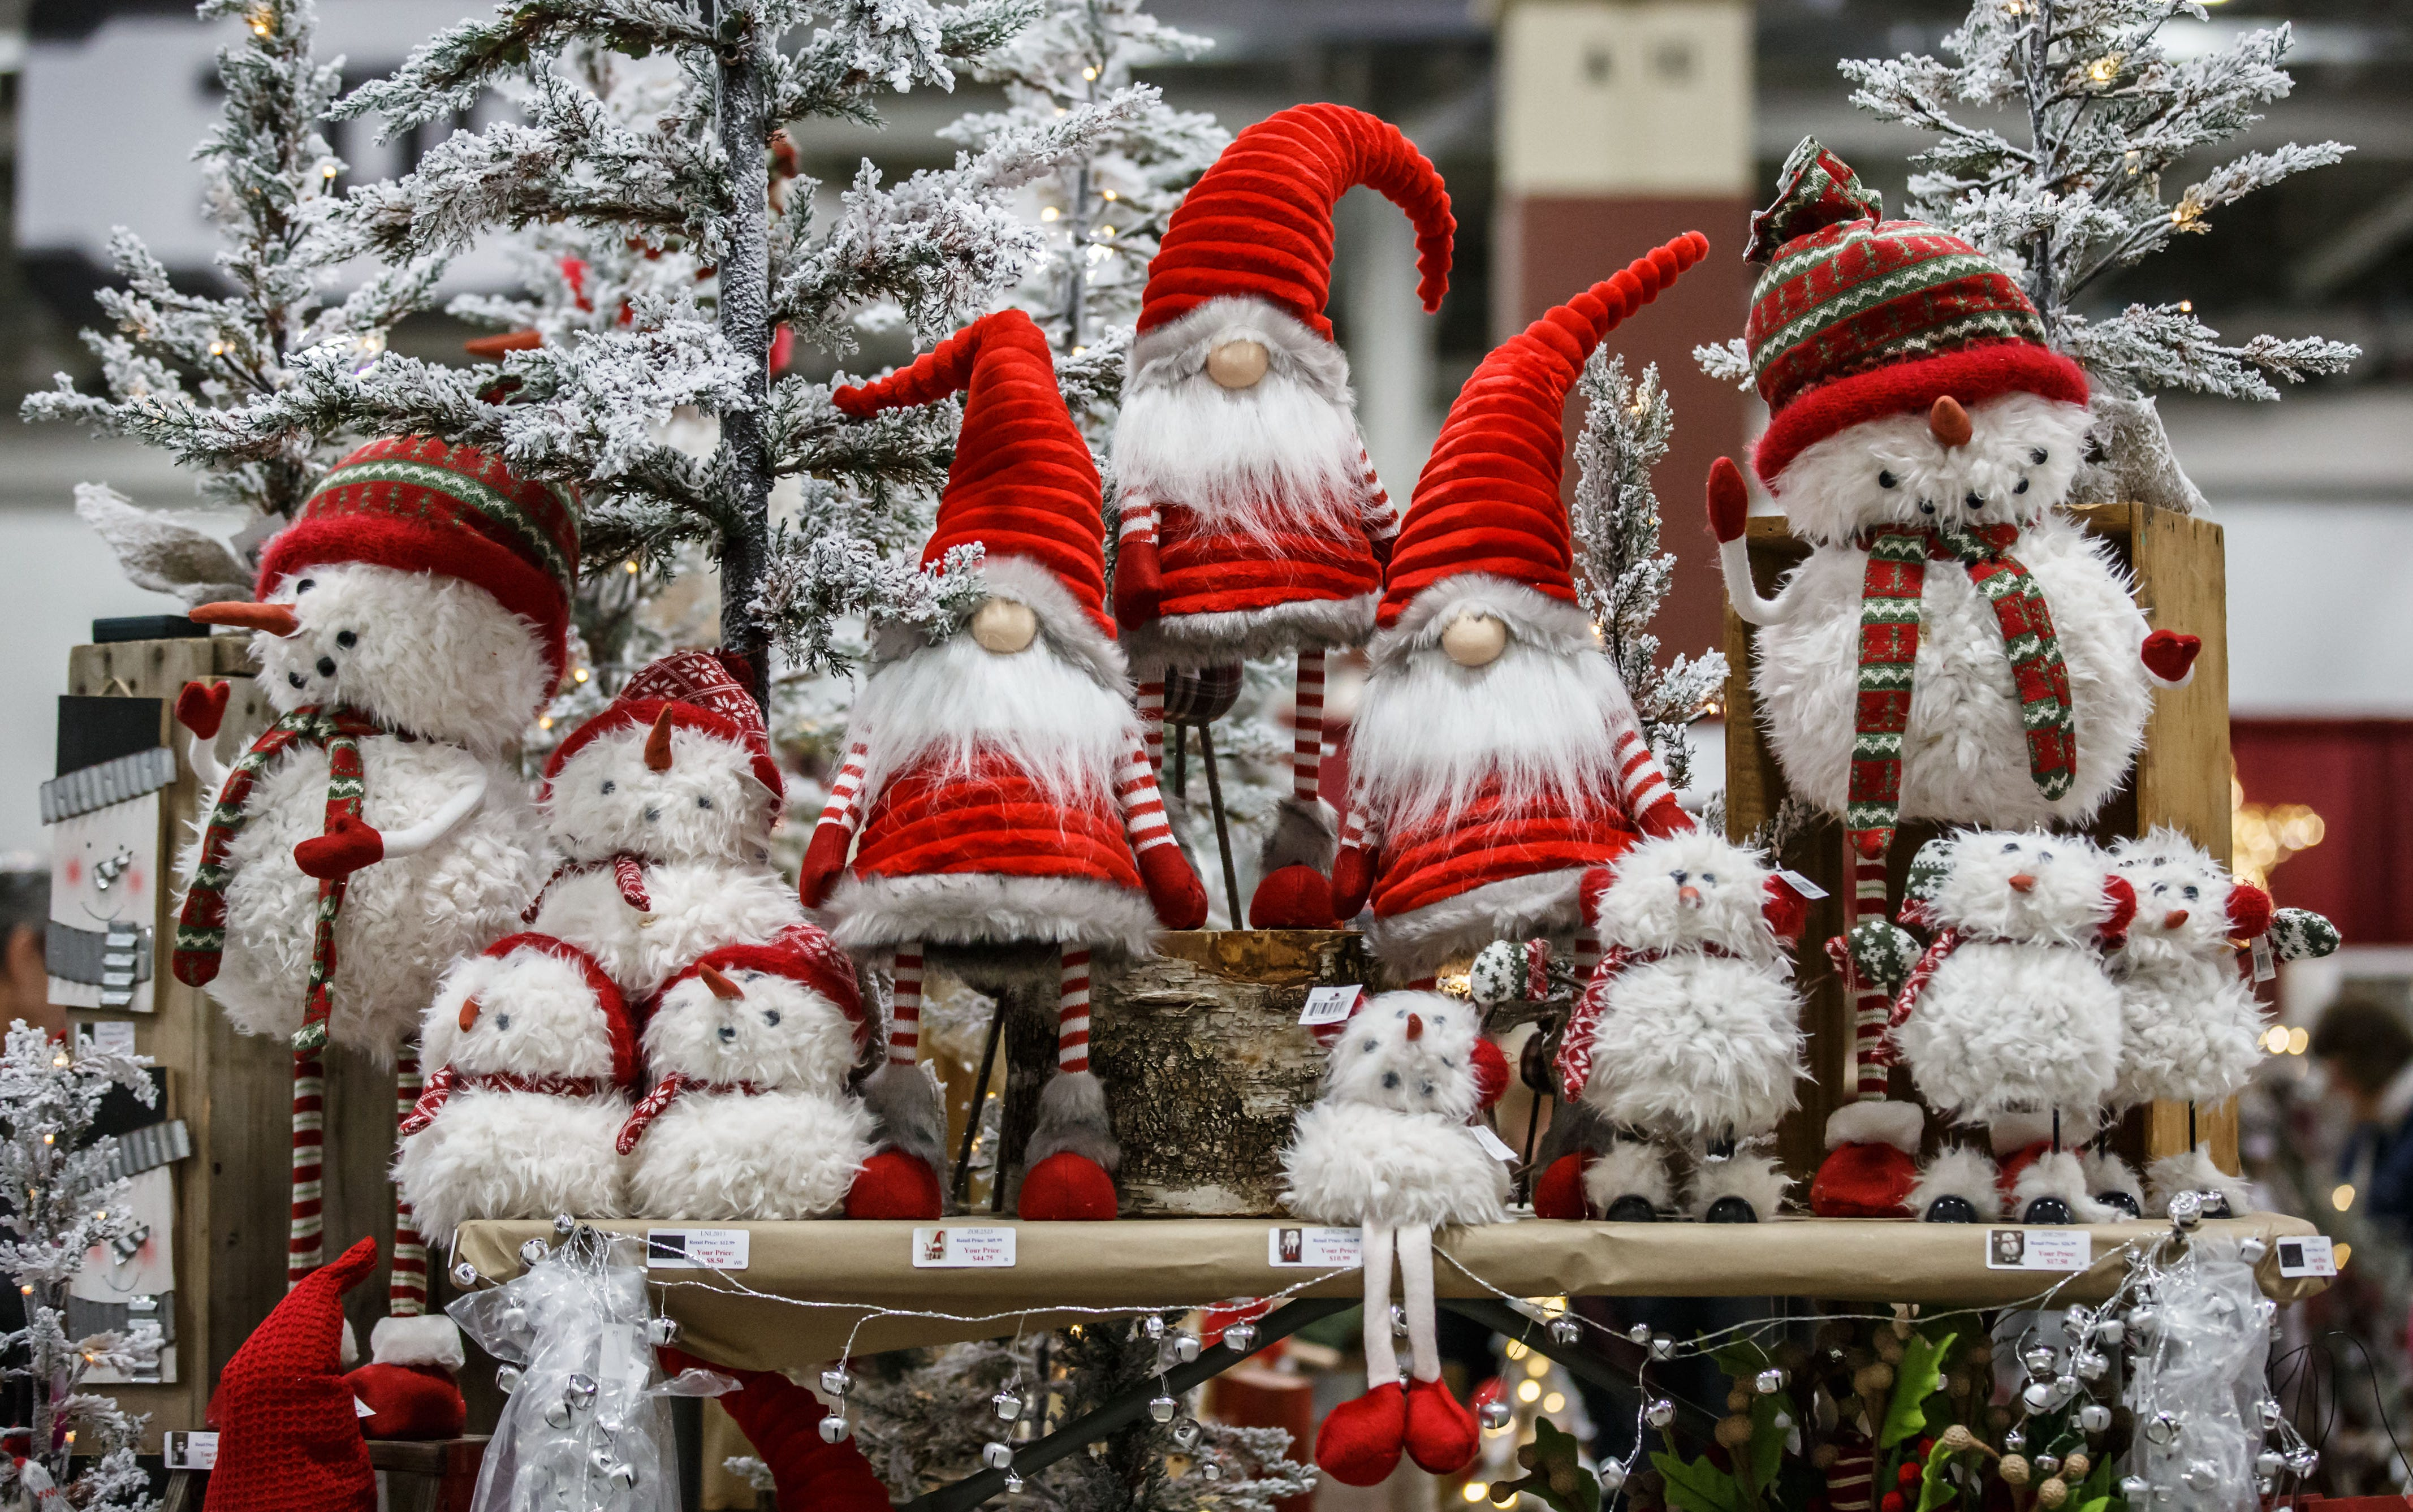 Fun and quirky holiday decorations from Bright Ideas in Beaver Dam tempt passing shoppers during the Milwaukee Holiday Boutique at Wisconsin State Fair Park on Friday, Nov. 2, 2018. The event features over 200 vendors, pictures with Santa, live entertainment and much more.